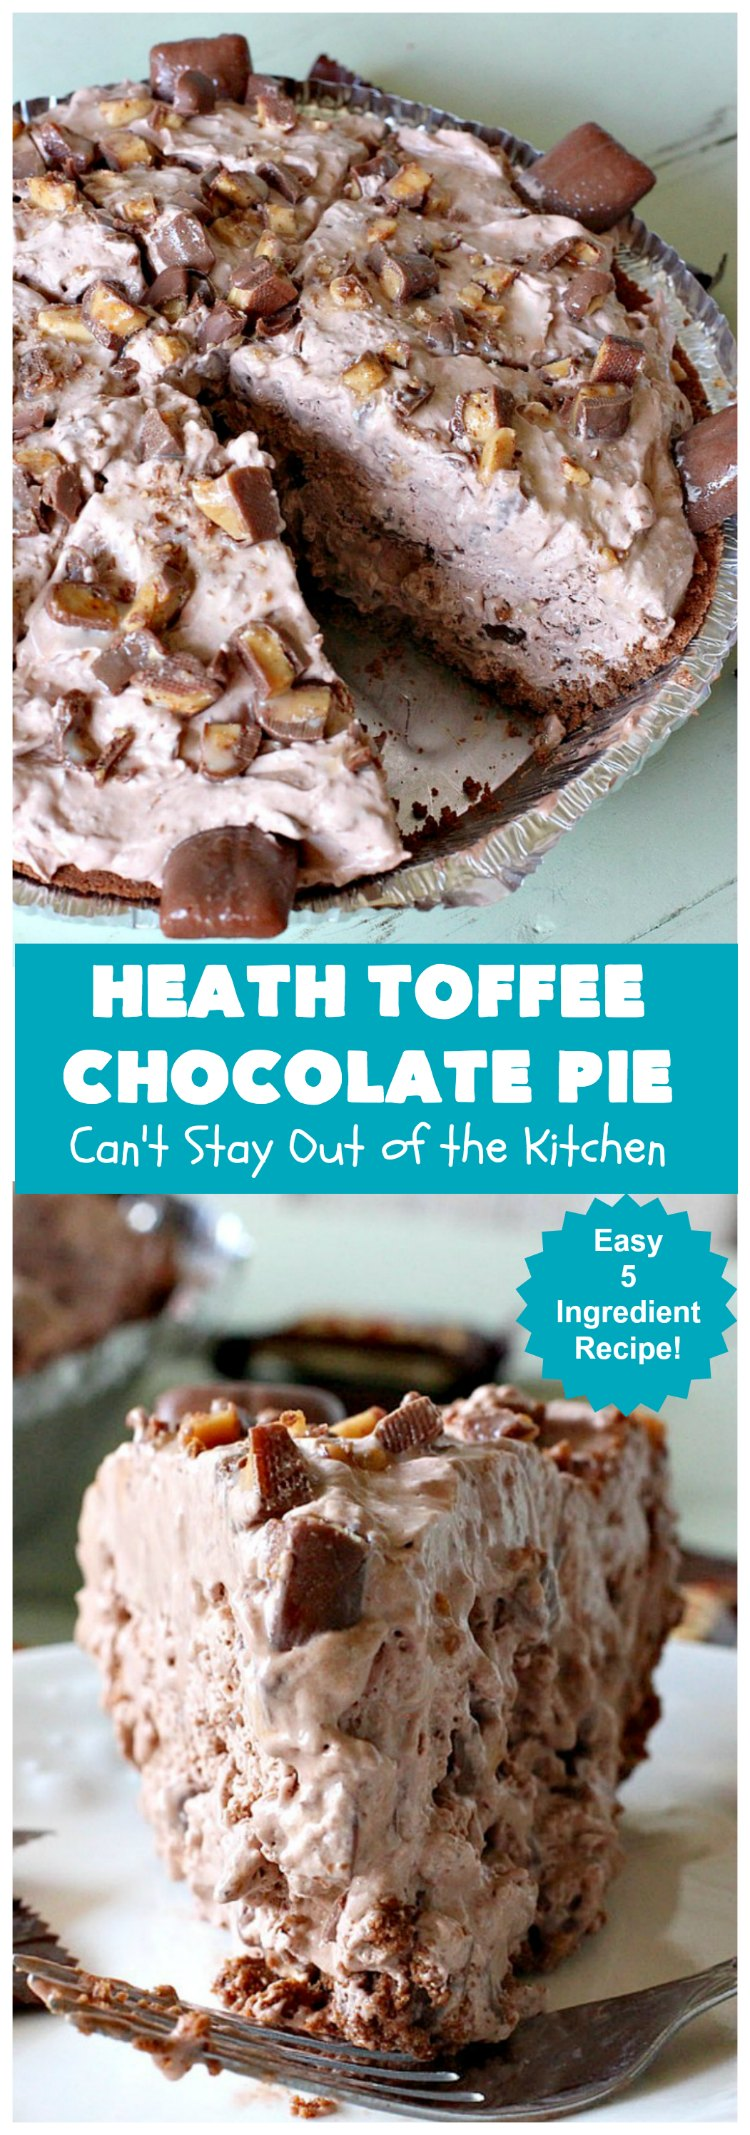 Heath Toffee Chocolate Pie | Can't Stay Out of the Kitchen | this luscious #ChocolatePie is rich, decadent & divine! It uses only 5 ingredients & is perfect for a #holiday or company #dessert #HeathToffeeBars #HeathToffeeChocolatePie #HeathToffeeDessert